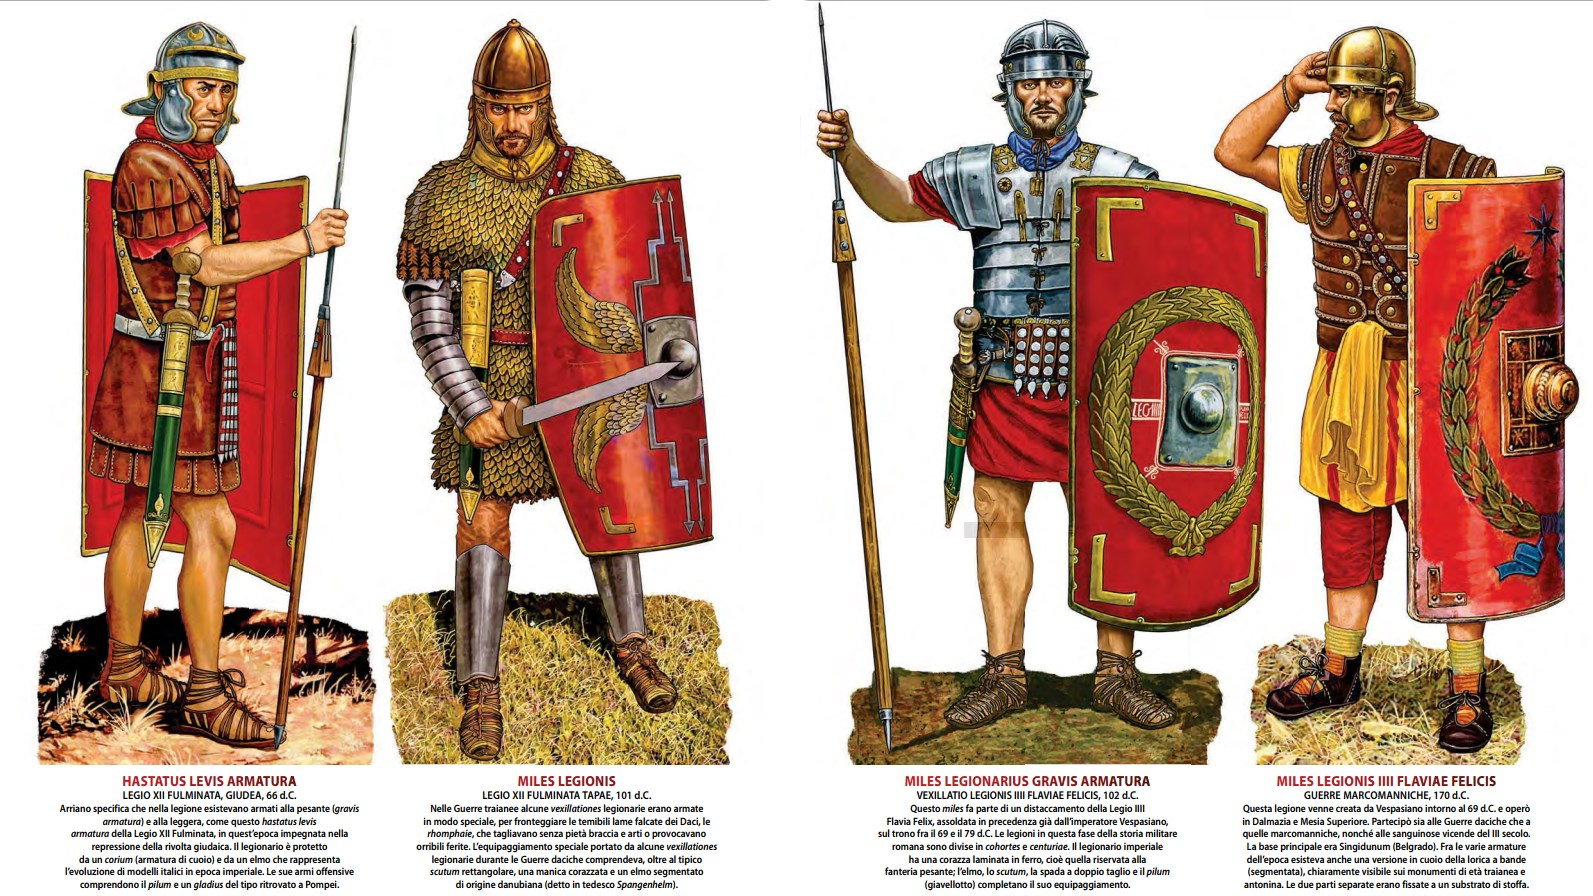 roman legionary 509 bc to 170 ad weapons and warfare